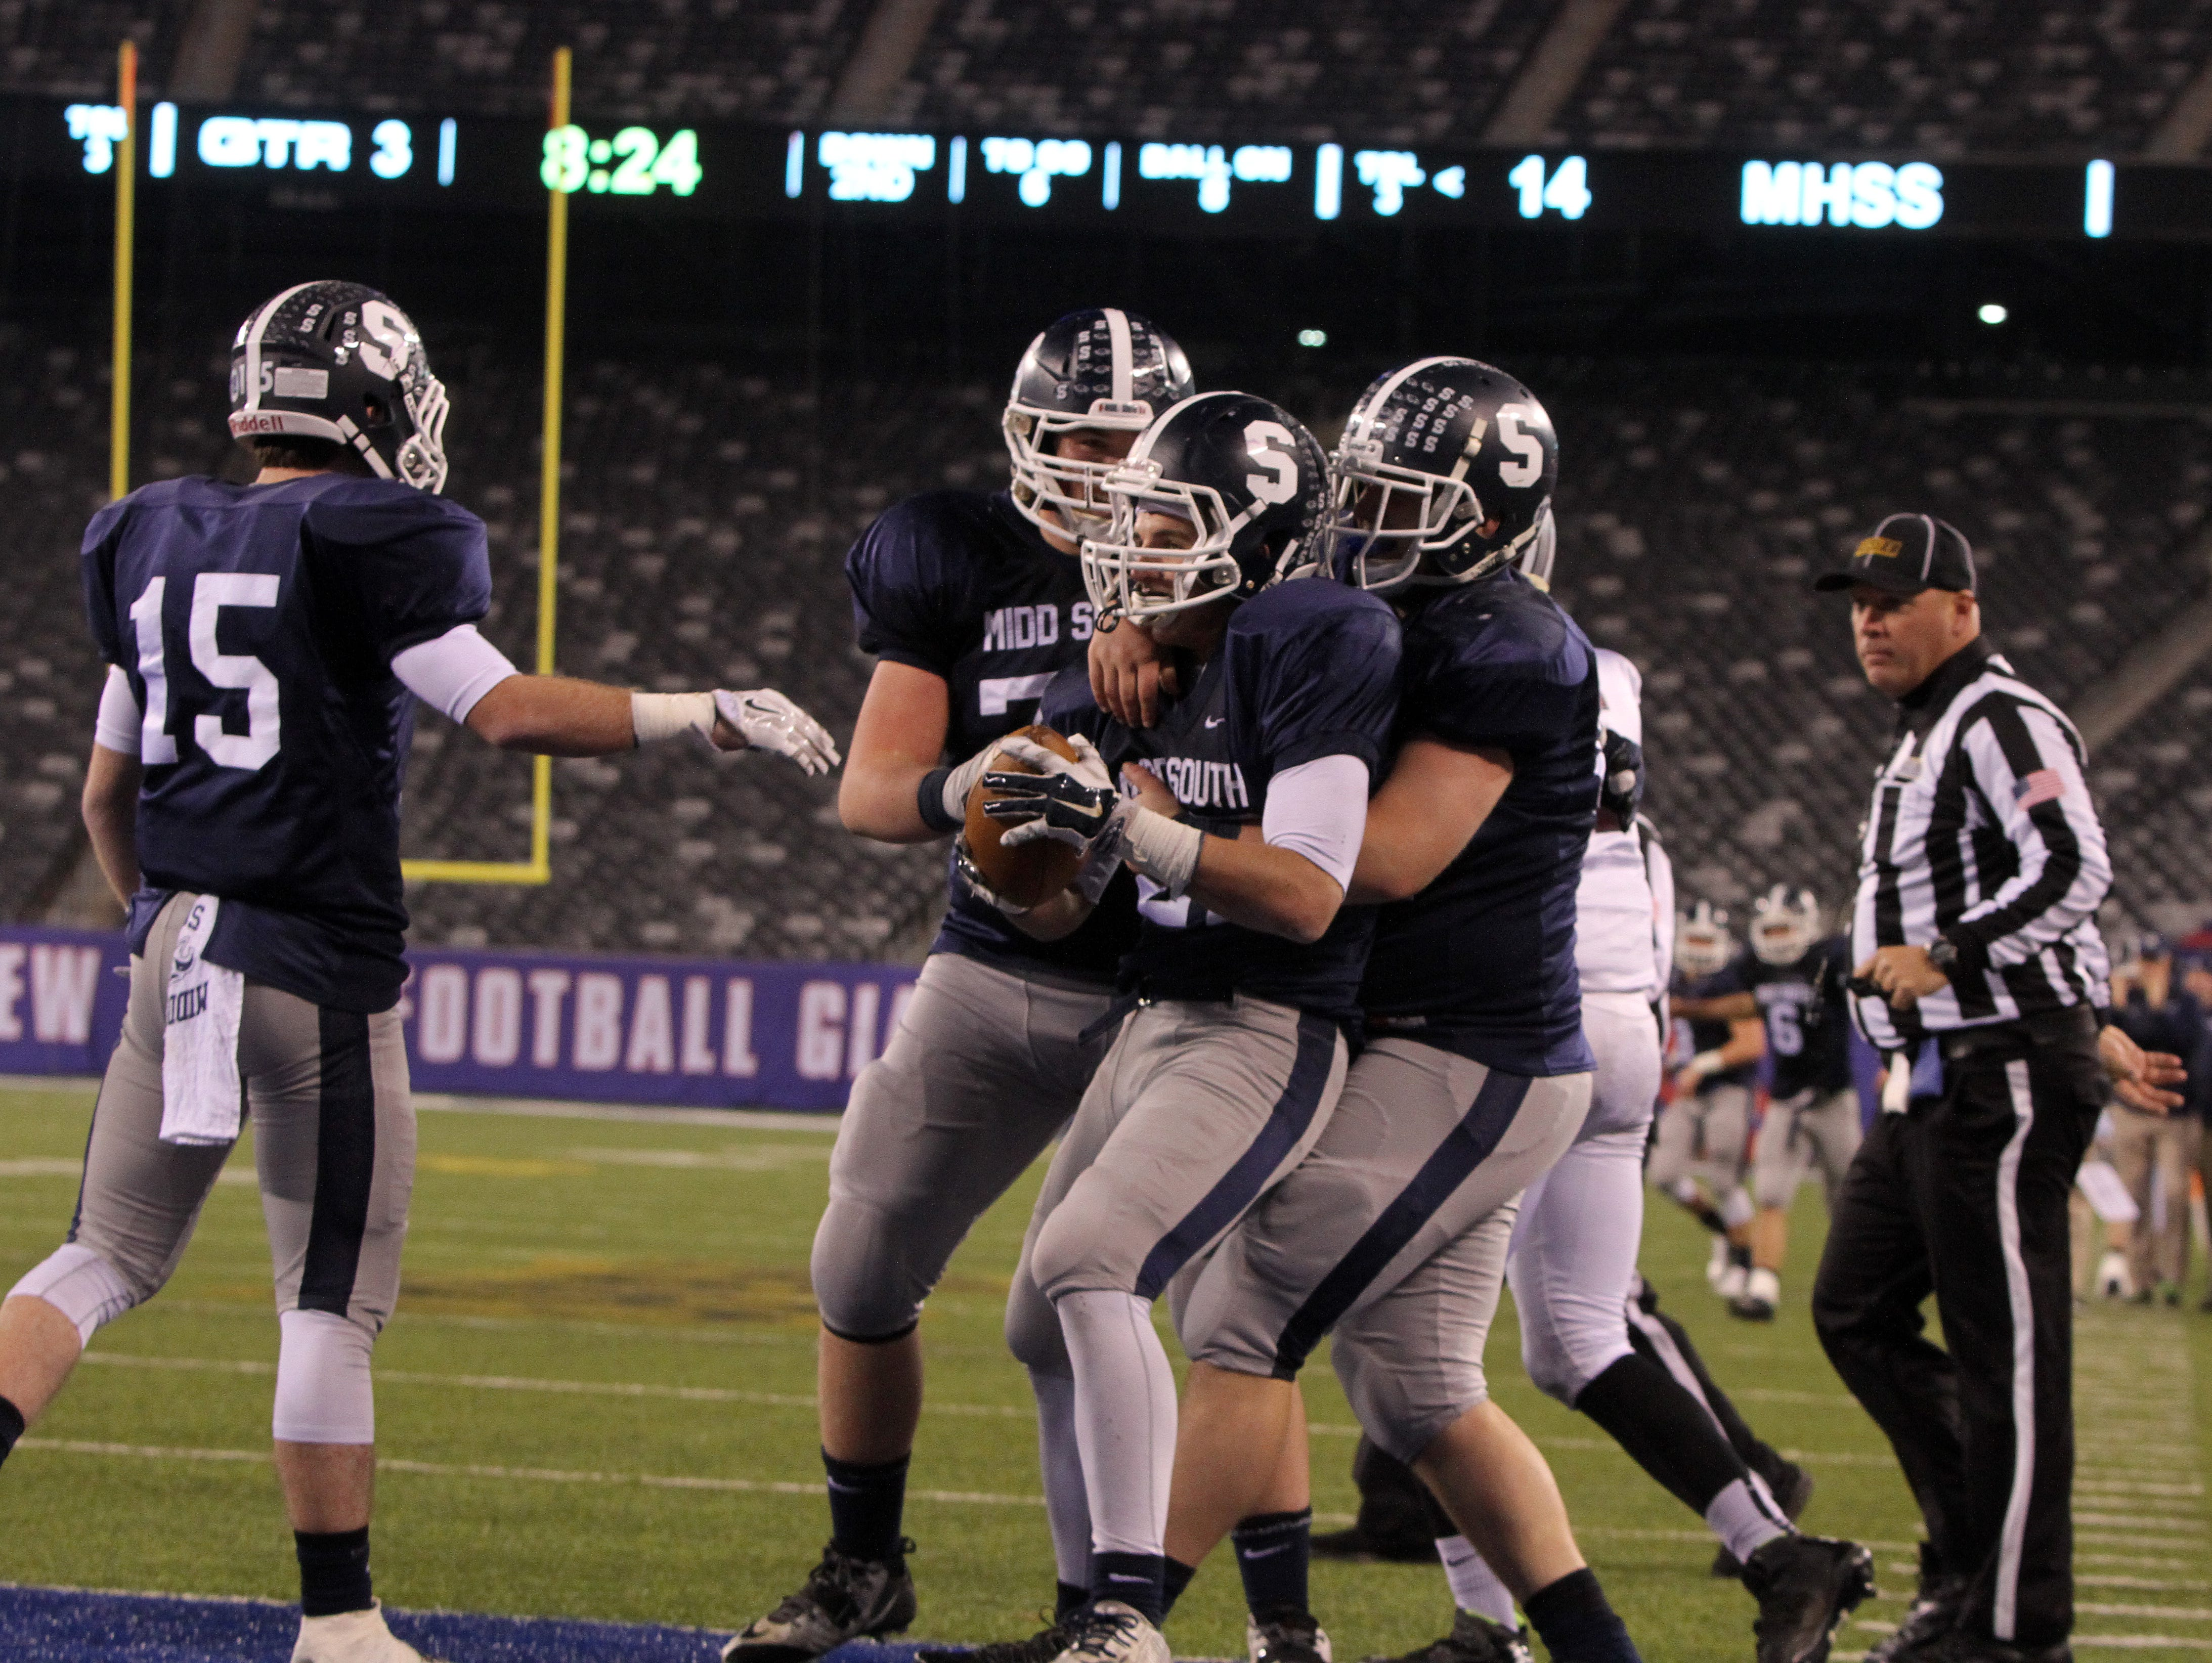 Middletown South's #27 Cole Rogers celebreates a touchdown in the 3rd quarter against Phillipsburg High School during the North 2 Group IV game of the 2015 NJSIAA/MetLife Stadium High School Football Championships at MetLife Stadium in East Rutherford, NJ Saturday December 5, 2015.